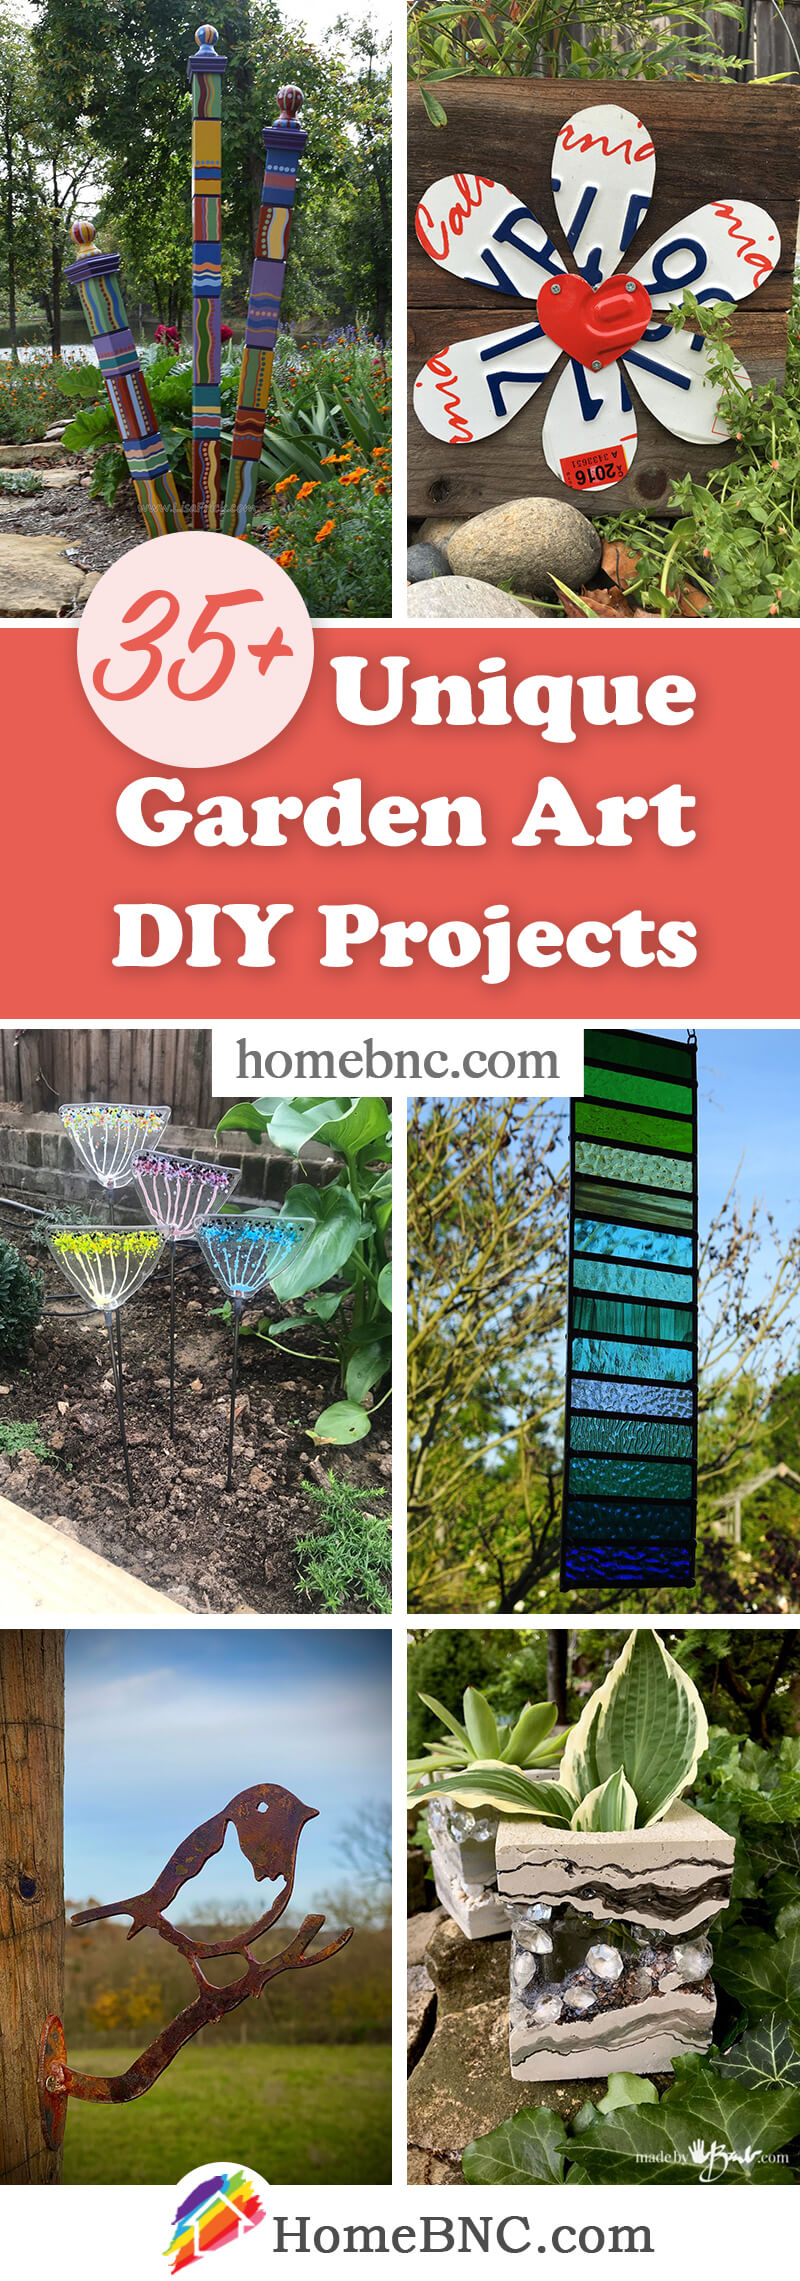 Garden Art DIY Ideas